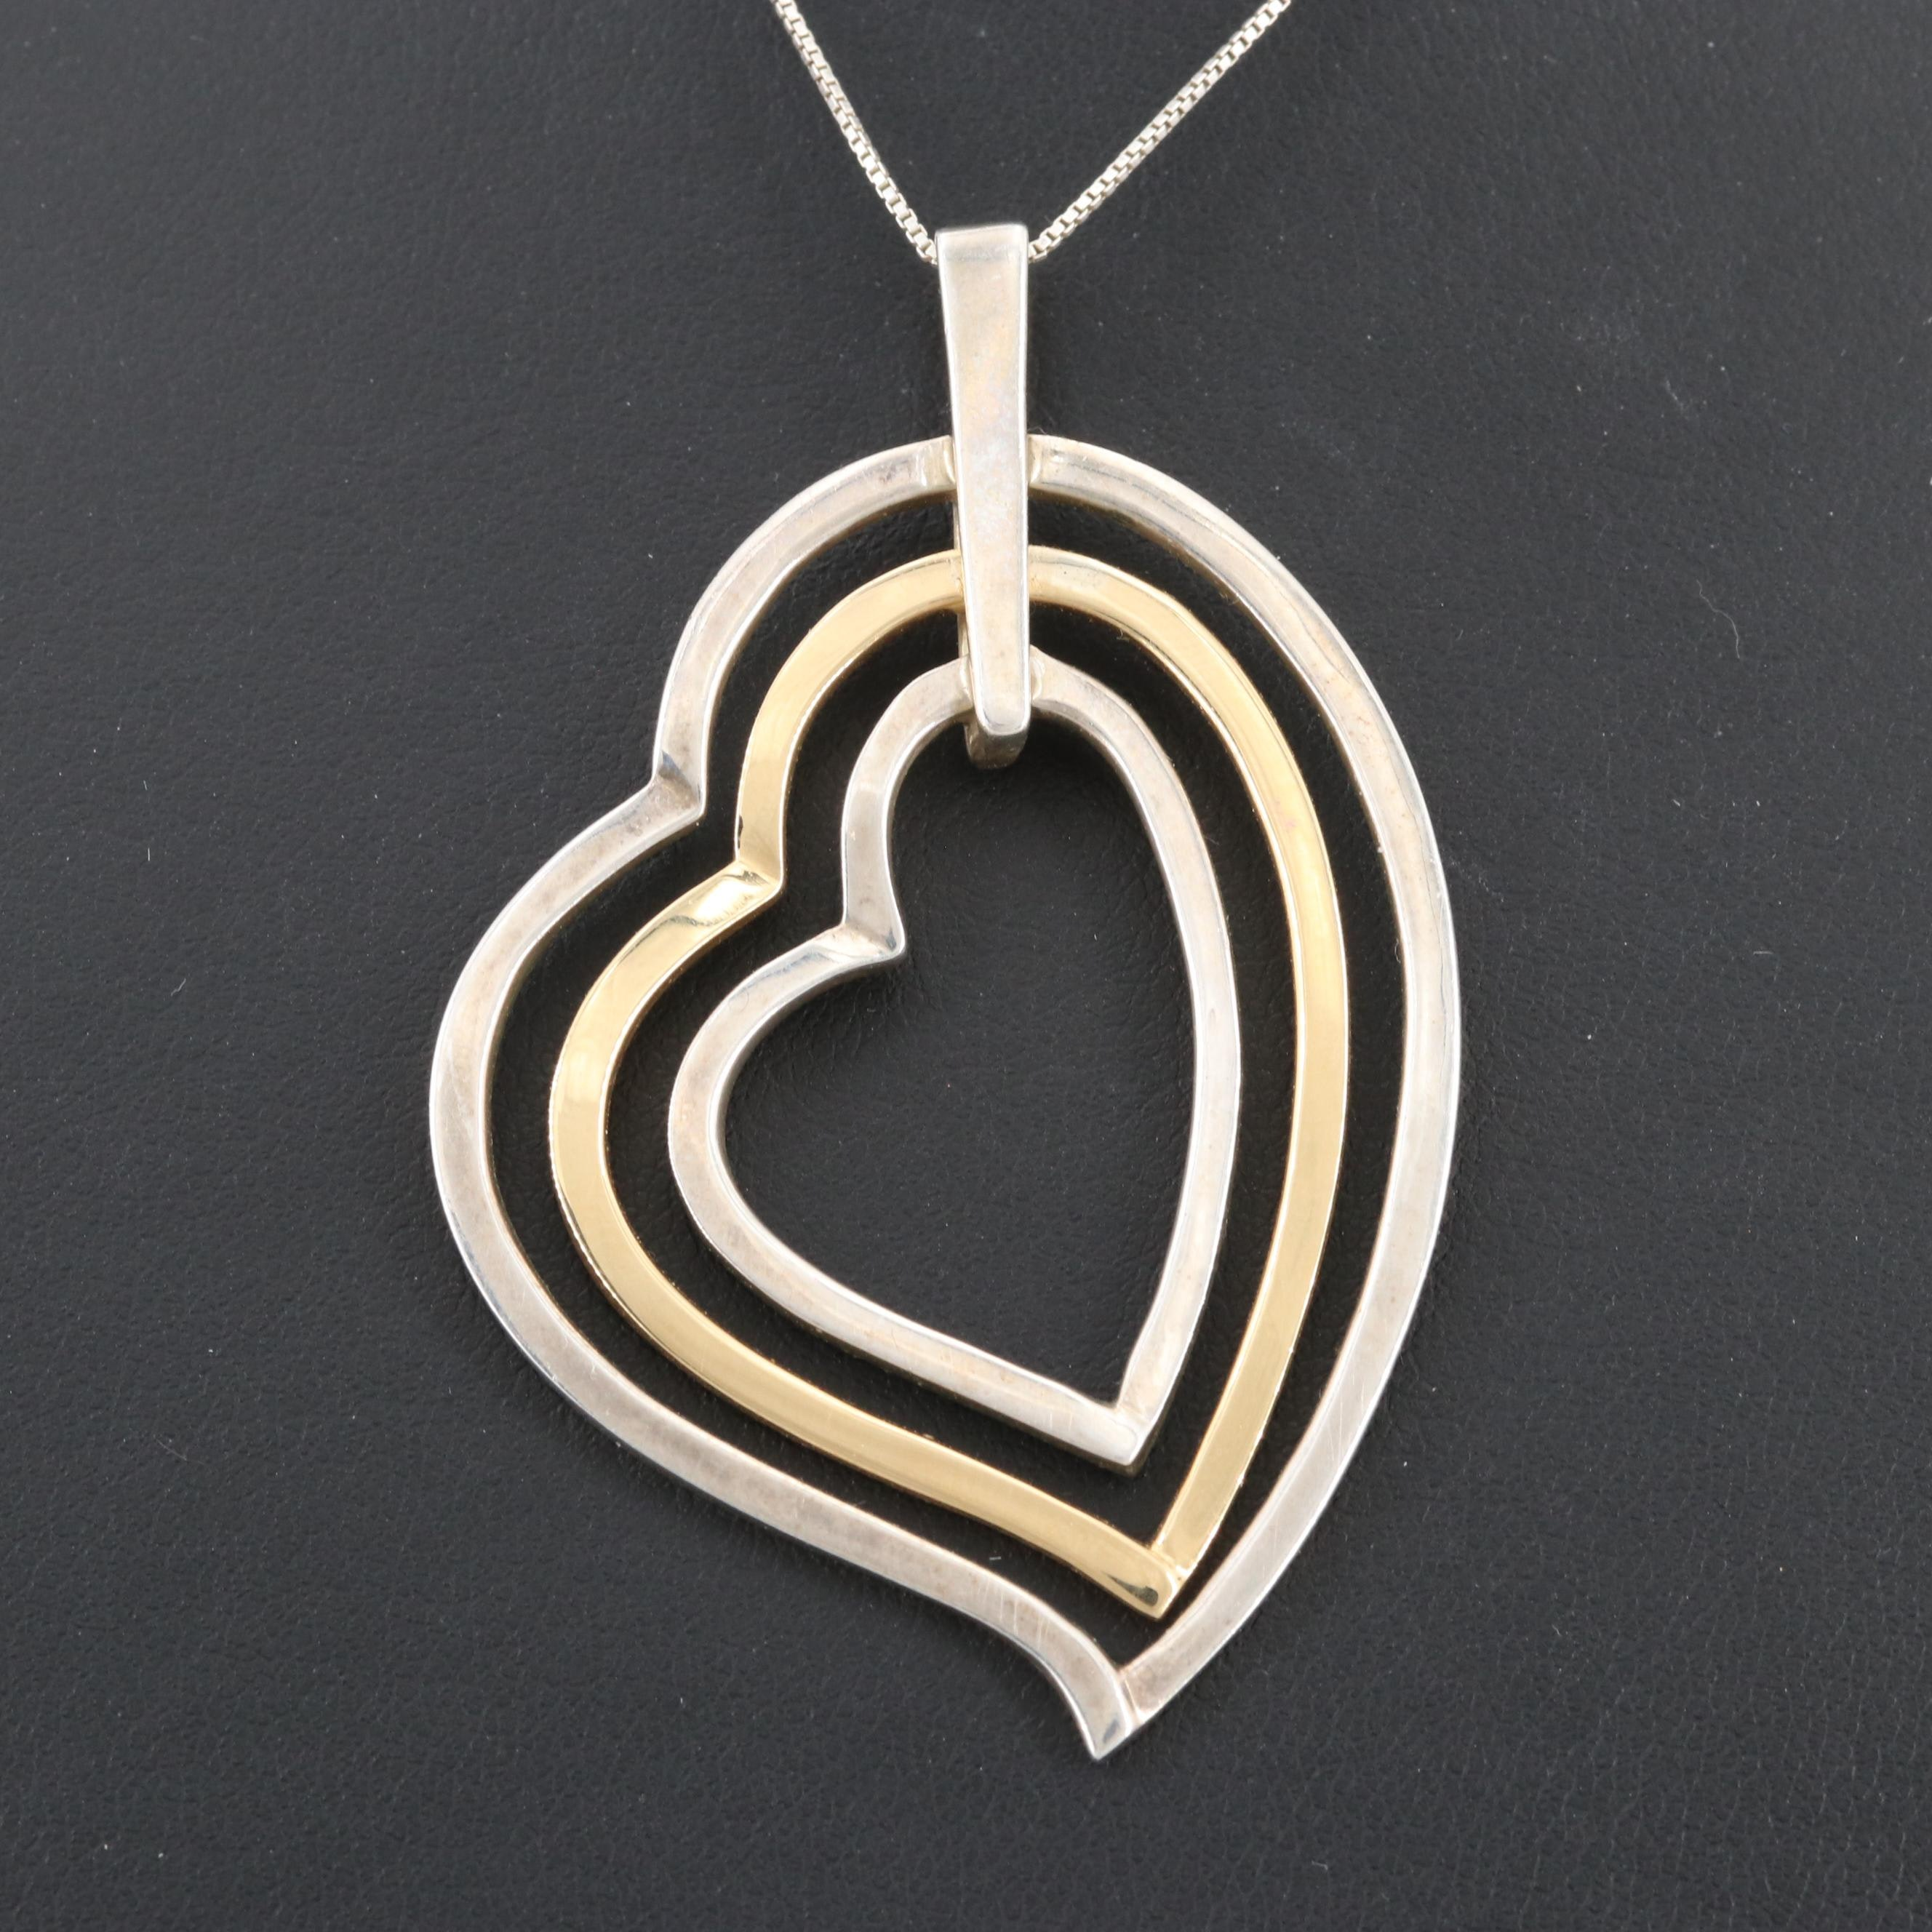 Sterling Silver Heart Necklace with 18K Yellow Gold Accents